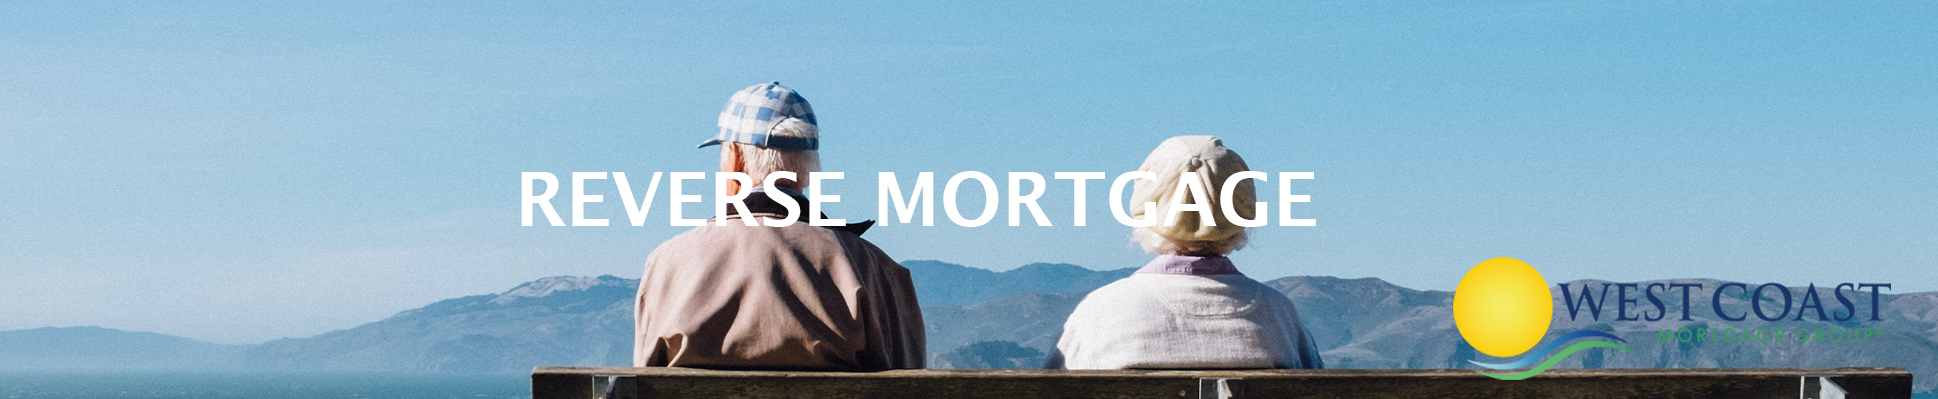 reverse mortgage west coast mortgage group